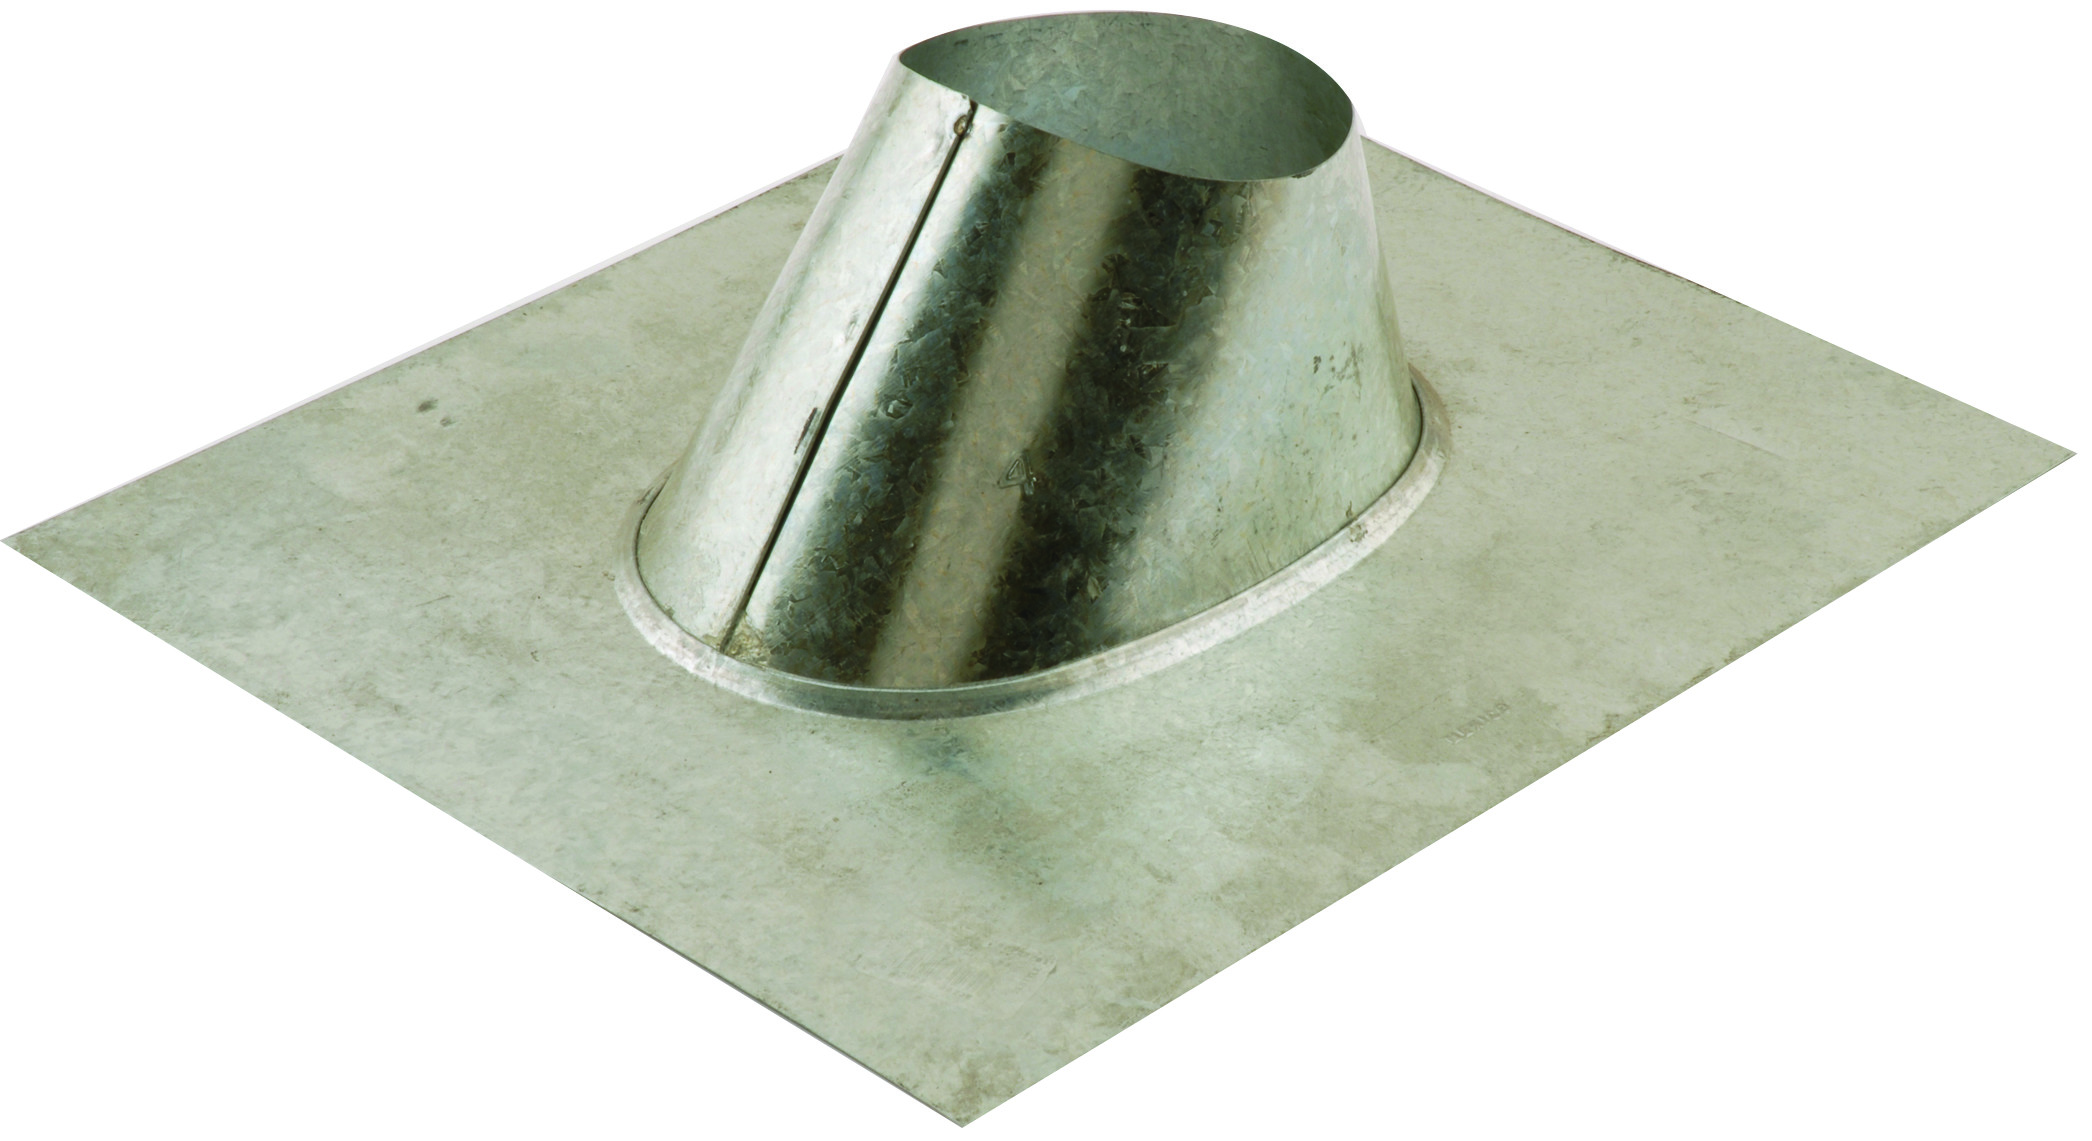 American Metal 6ef Ameri Vent Flashing Fits 6 Inch Double Wall Chimney Pipe 095029302907 1